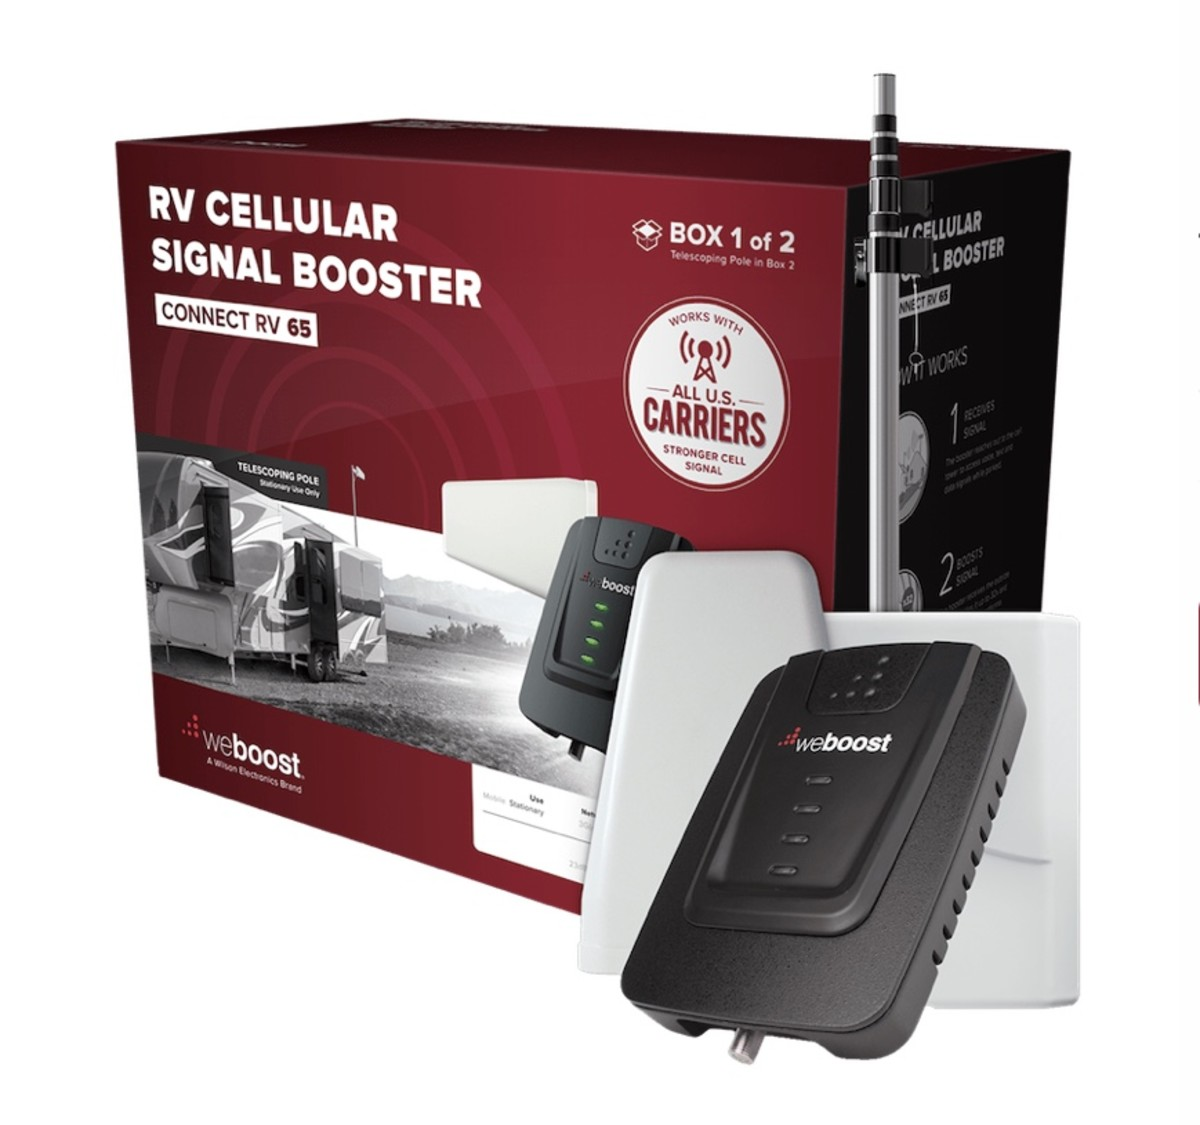 weboost-connect-rv-65-cellular-signal-booster